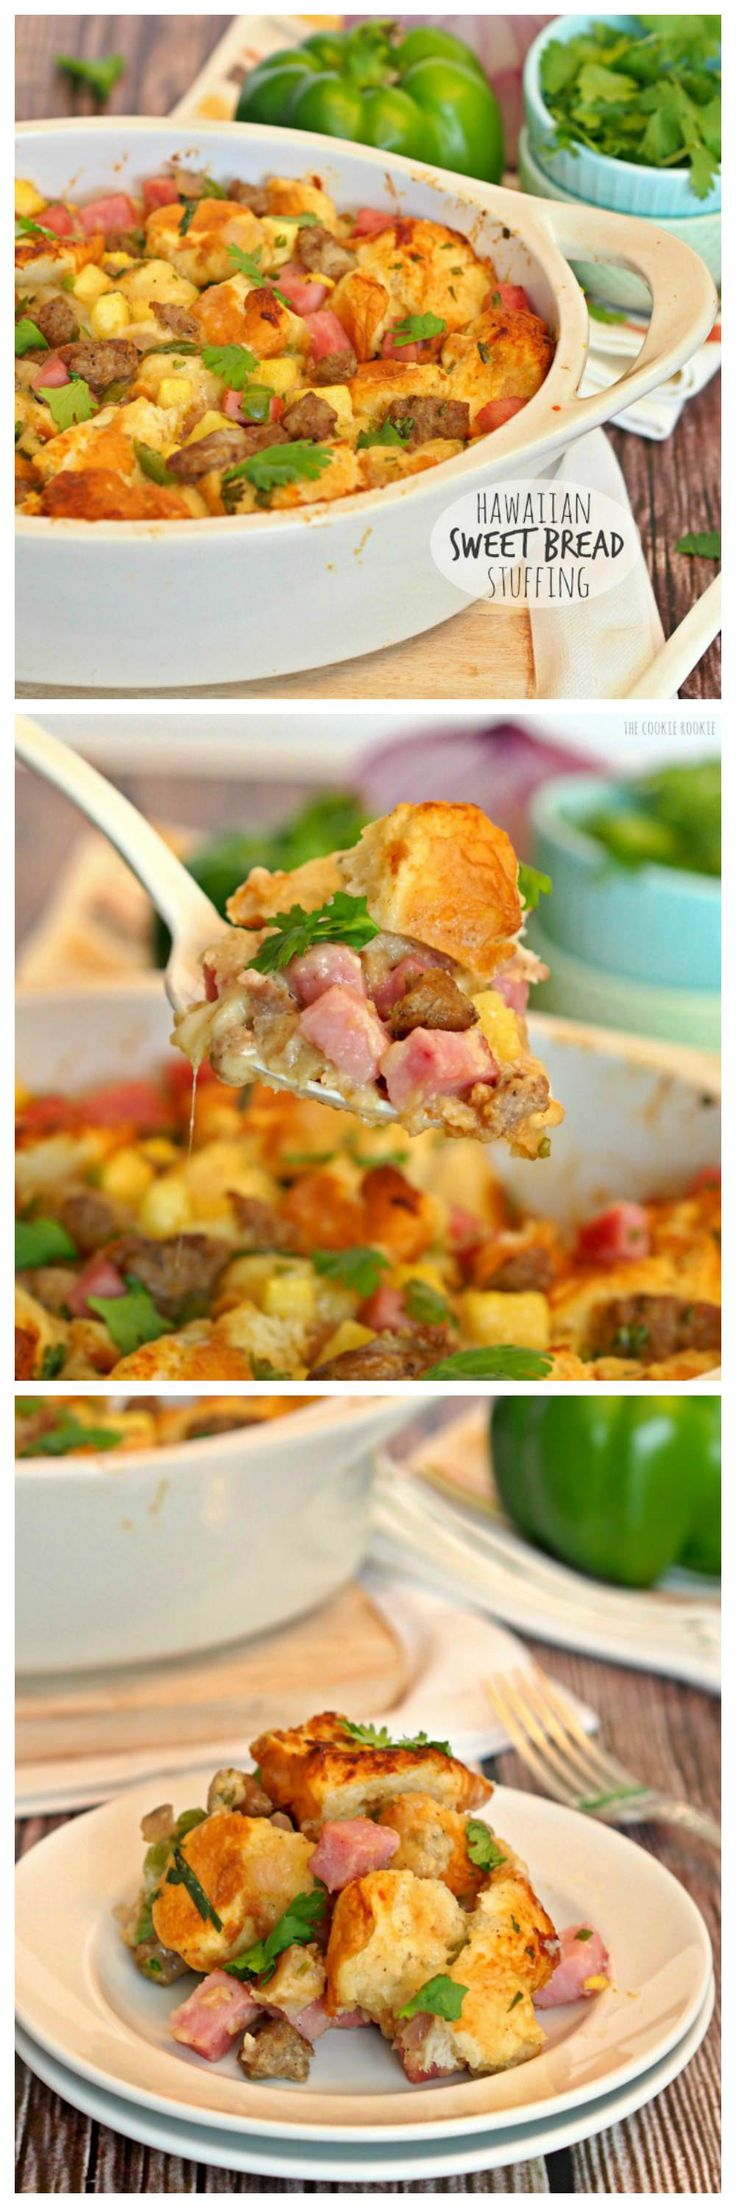 Hawaiian Sweet Bread Stuffing with Jones Sausage and Ham! The perfect unique side dish for Thanksgiving! | The Cookie Rookie